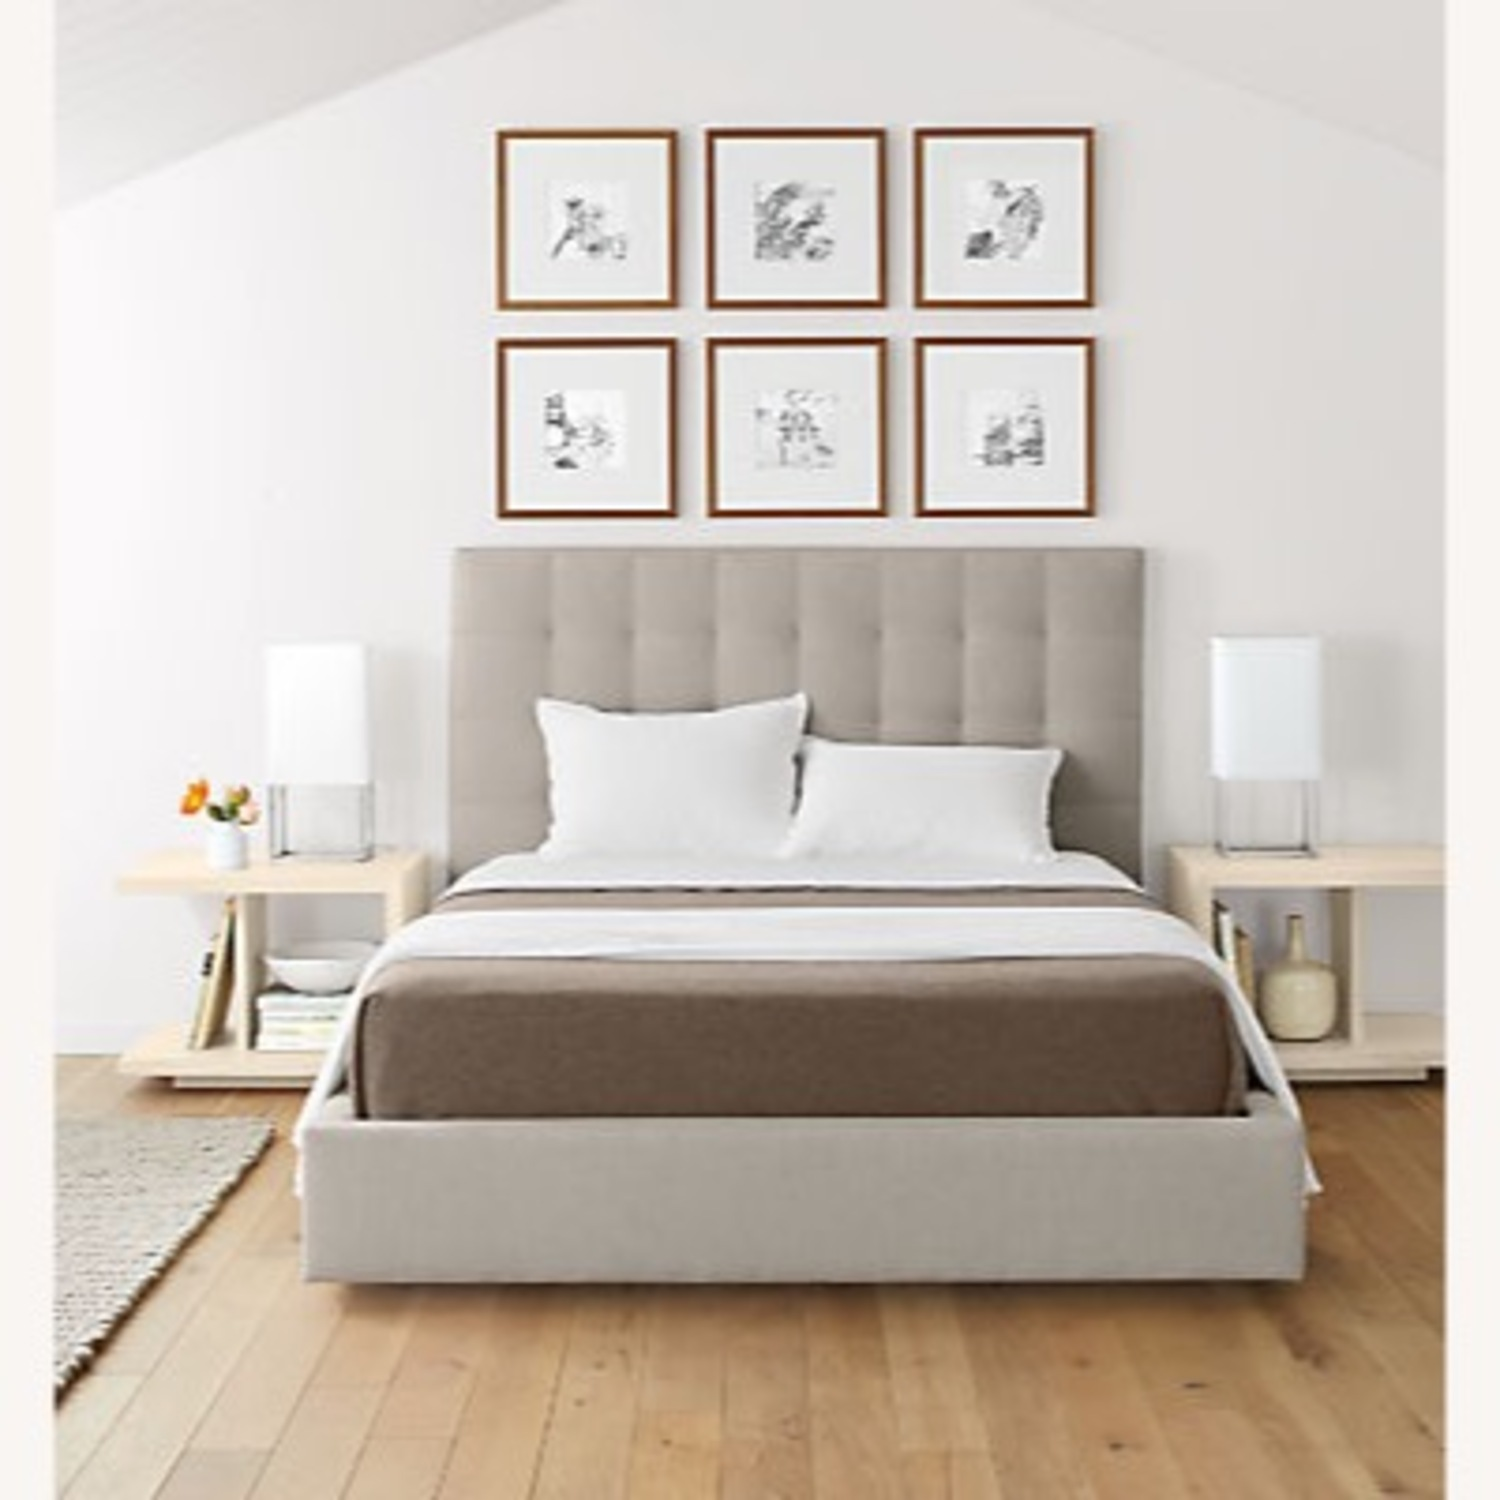 Room & Board Queen Size Light Grey Avery Bed - image-7